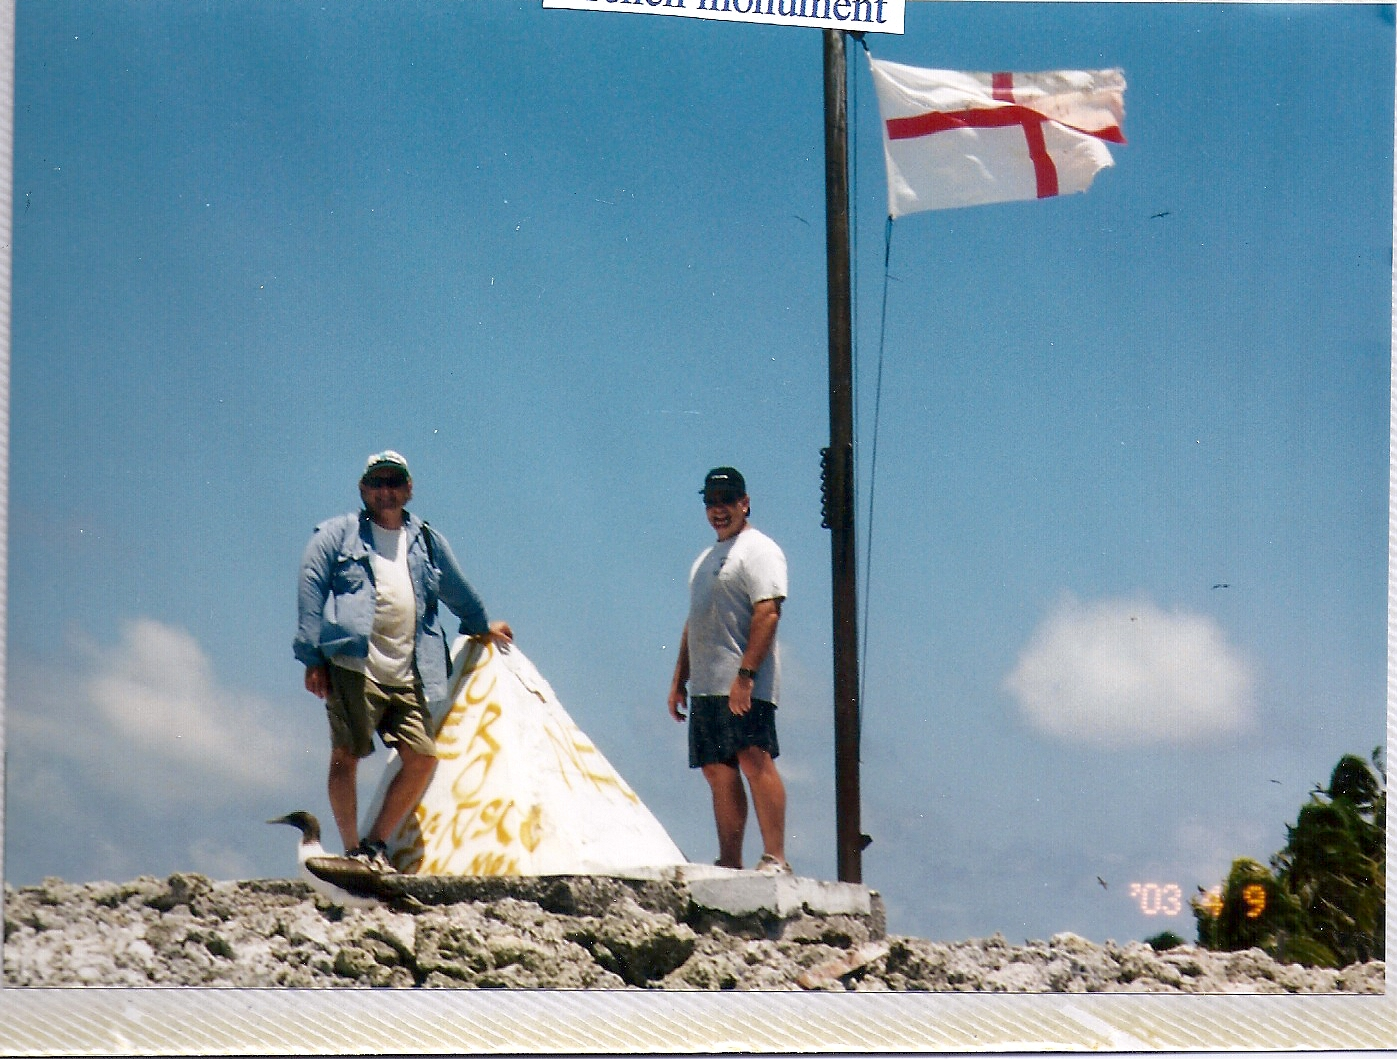 Jeff and Greg posing with French Flag on Clipperton Atoll.jpg